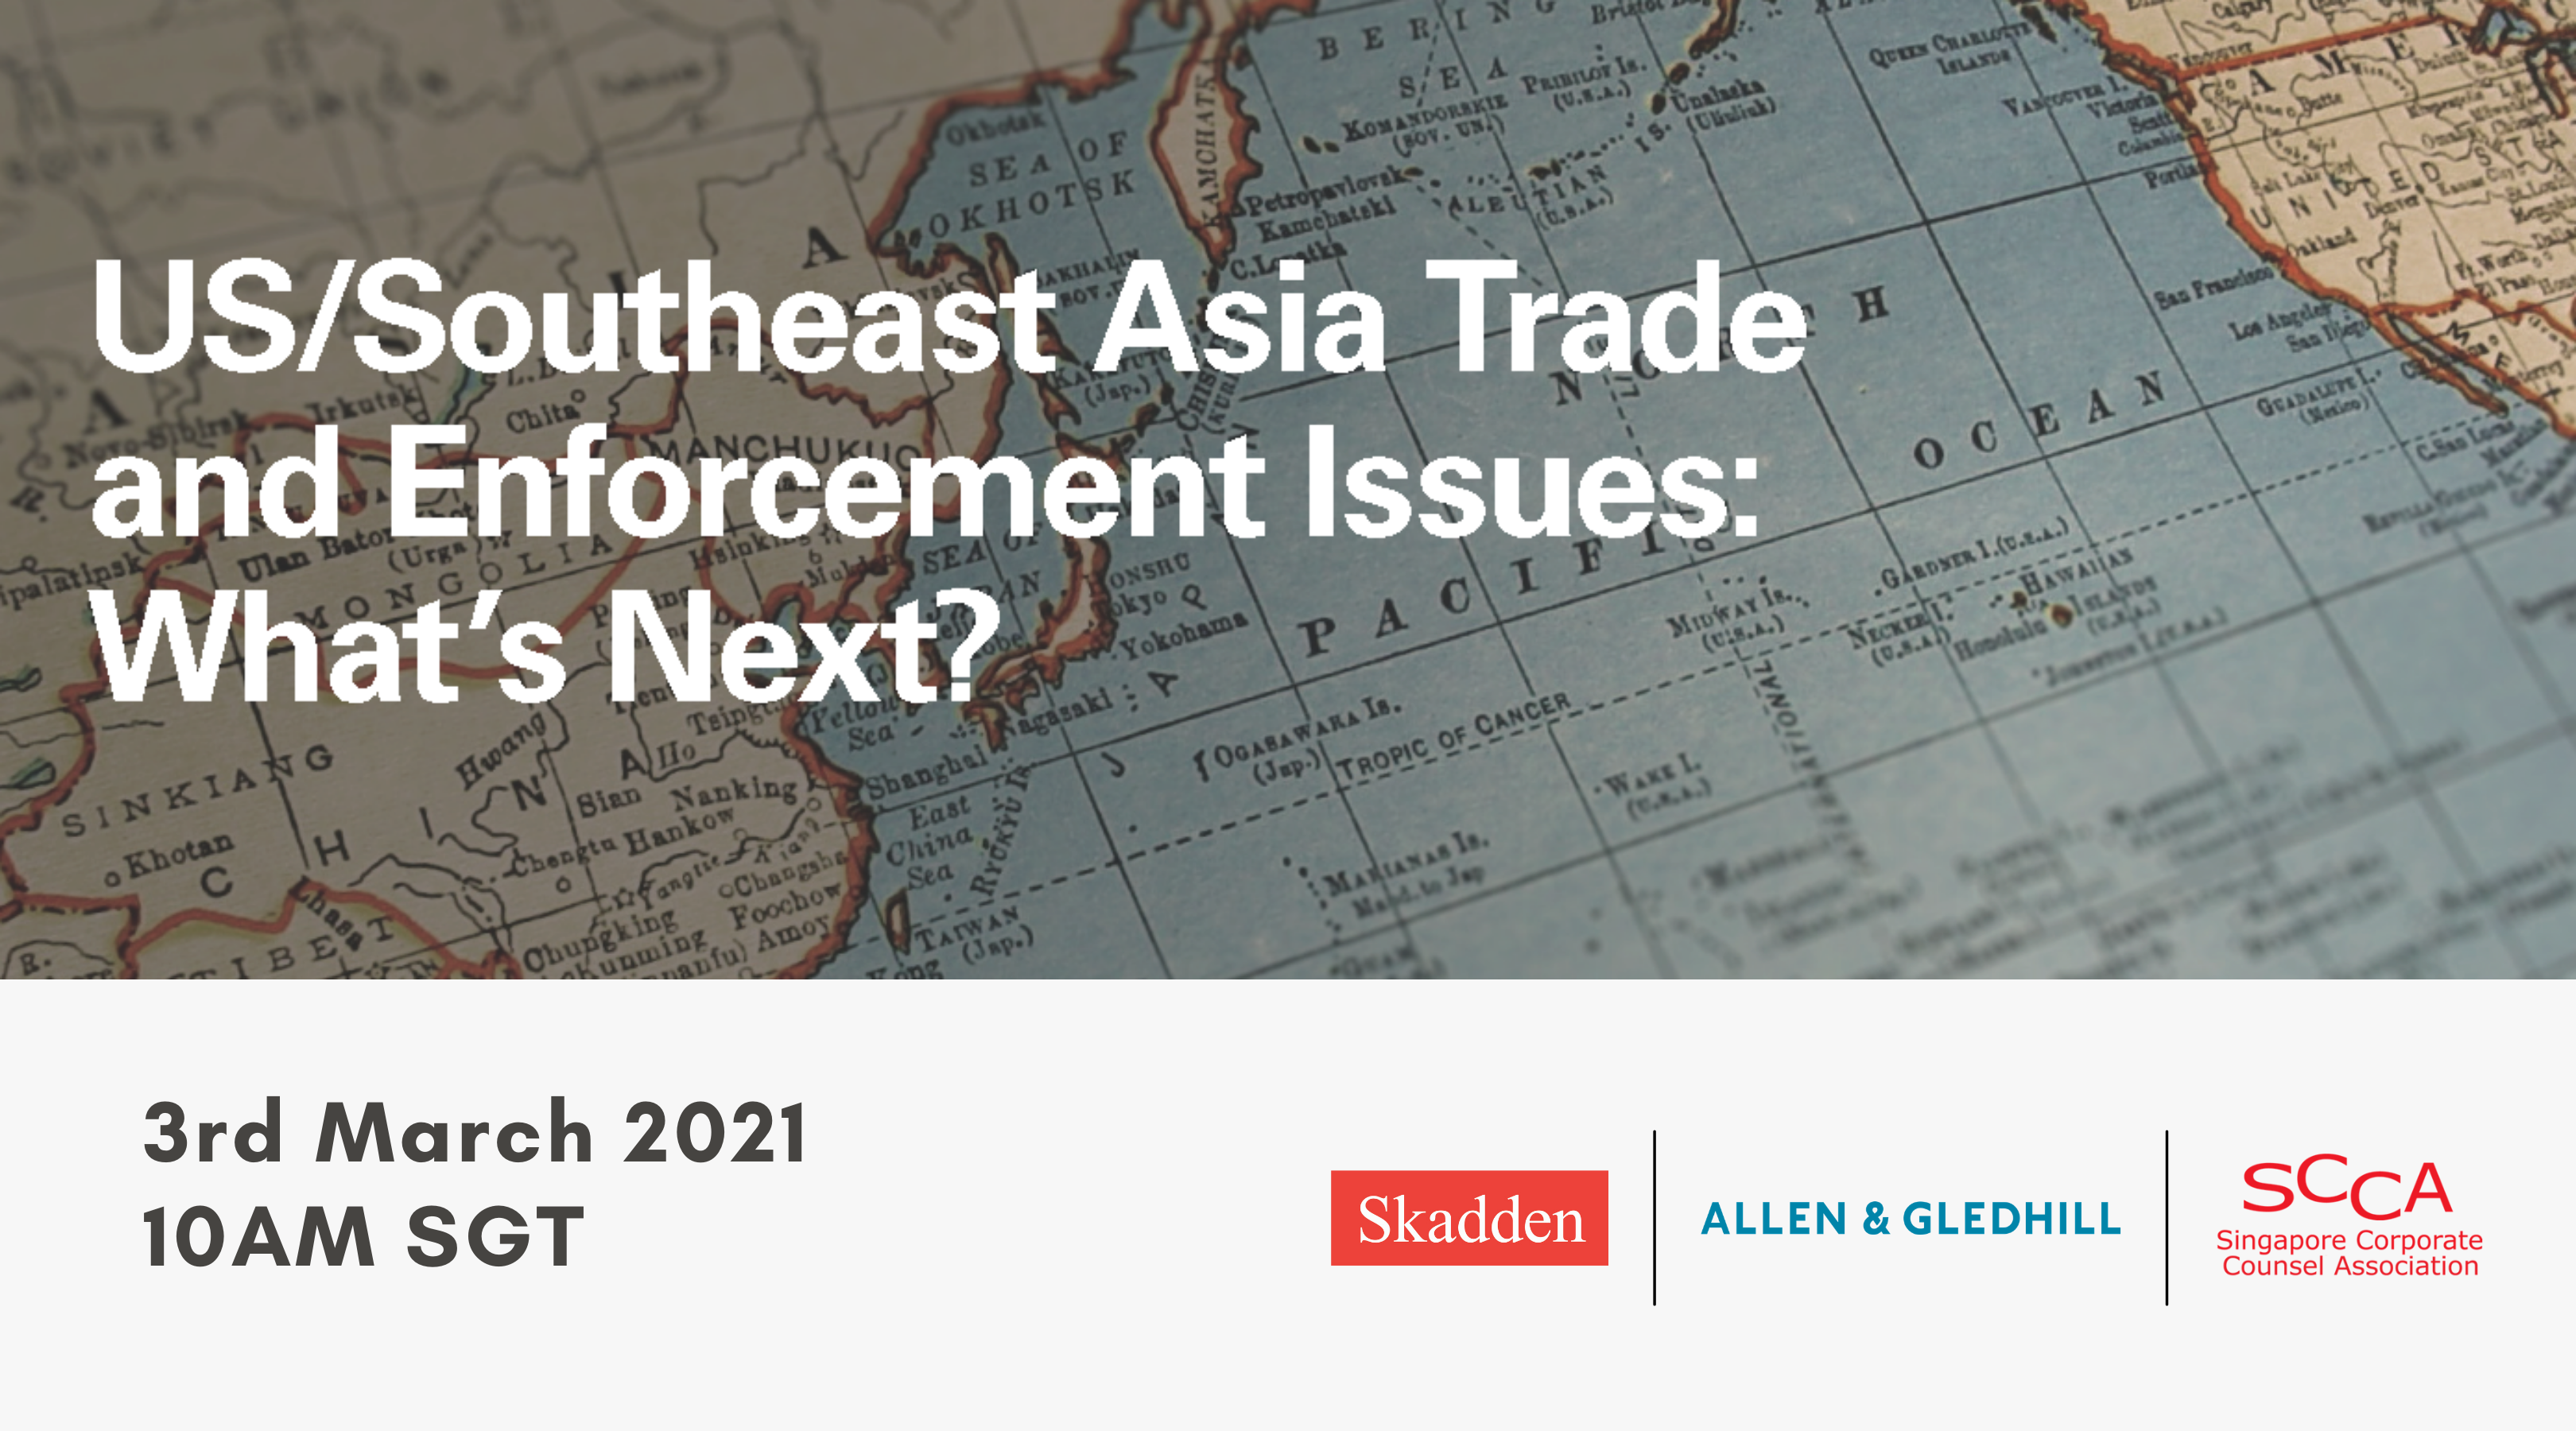 US/Southeast Asia Trade and Enforcement Issues: What's Next?